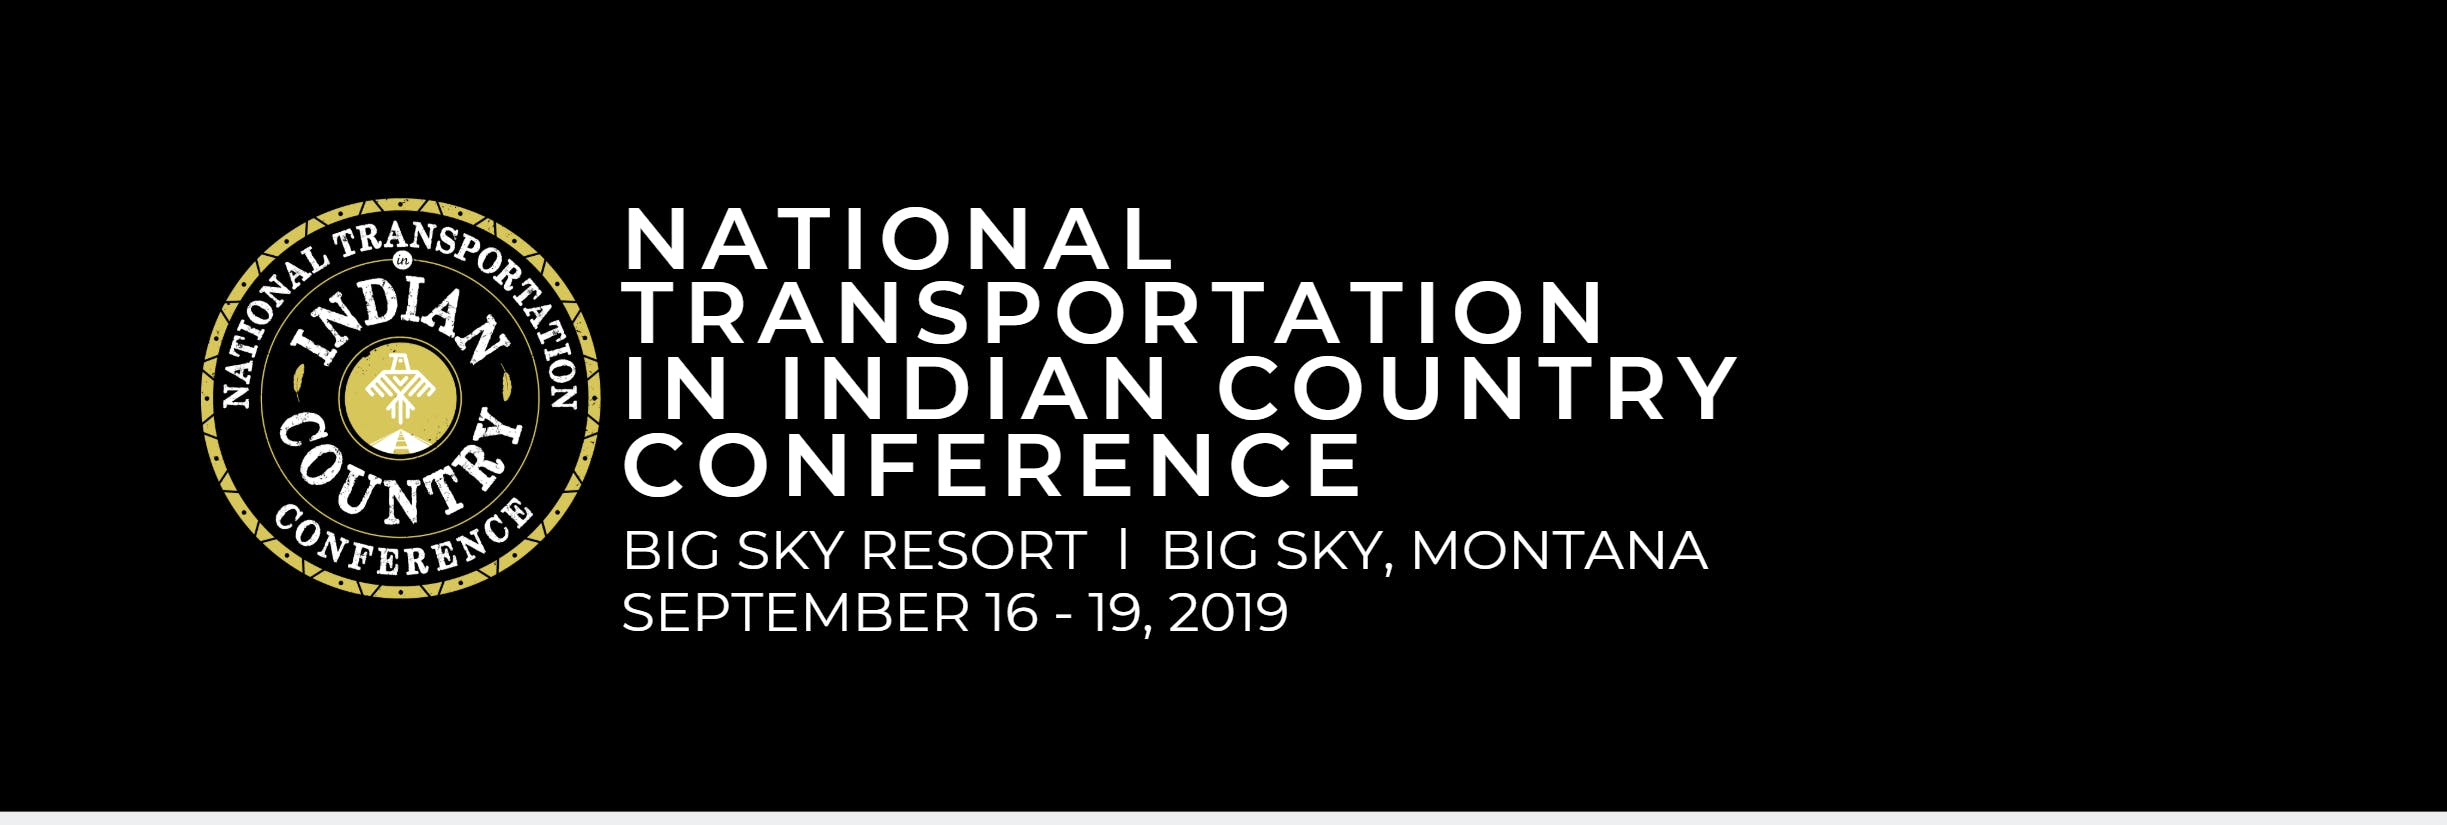 Conferences in Silver Star 2019   Summits in Silver Star